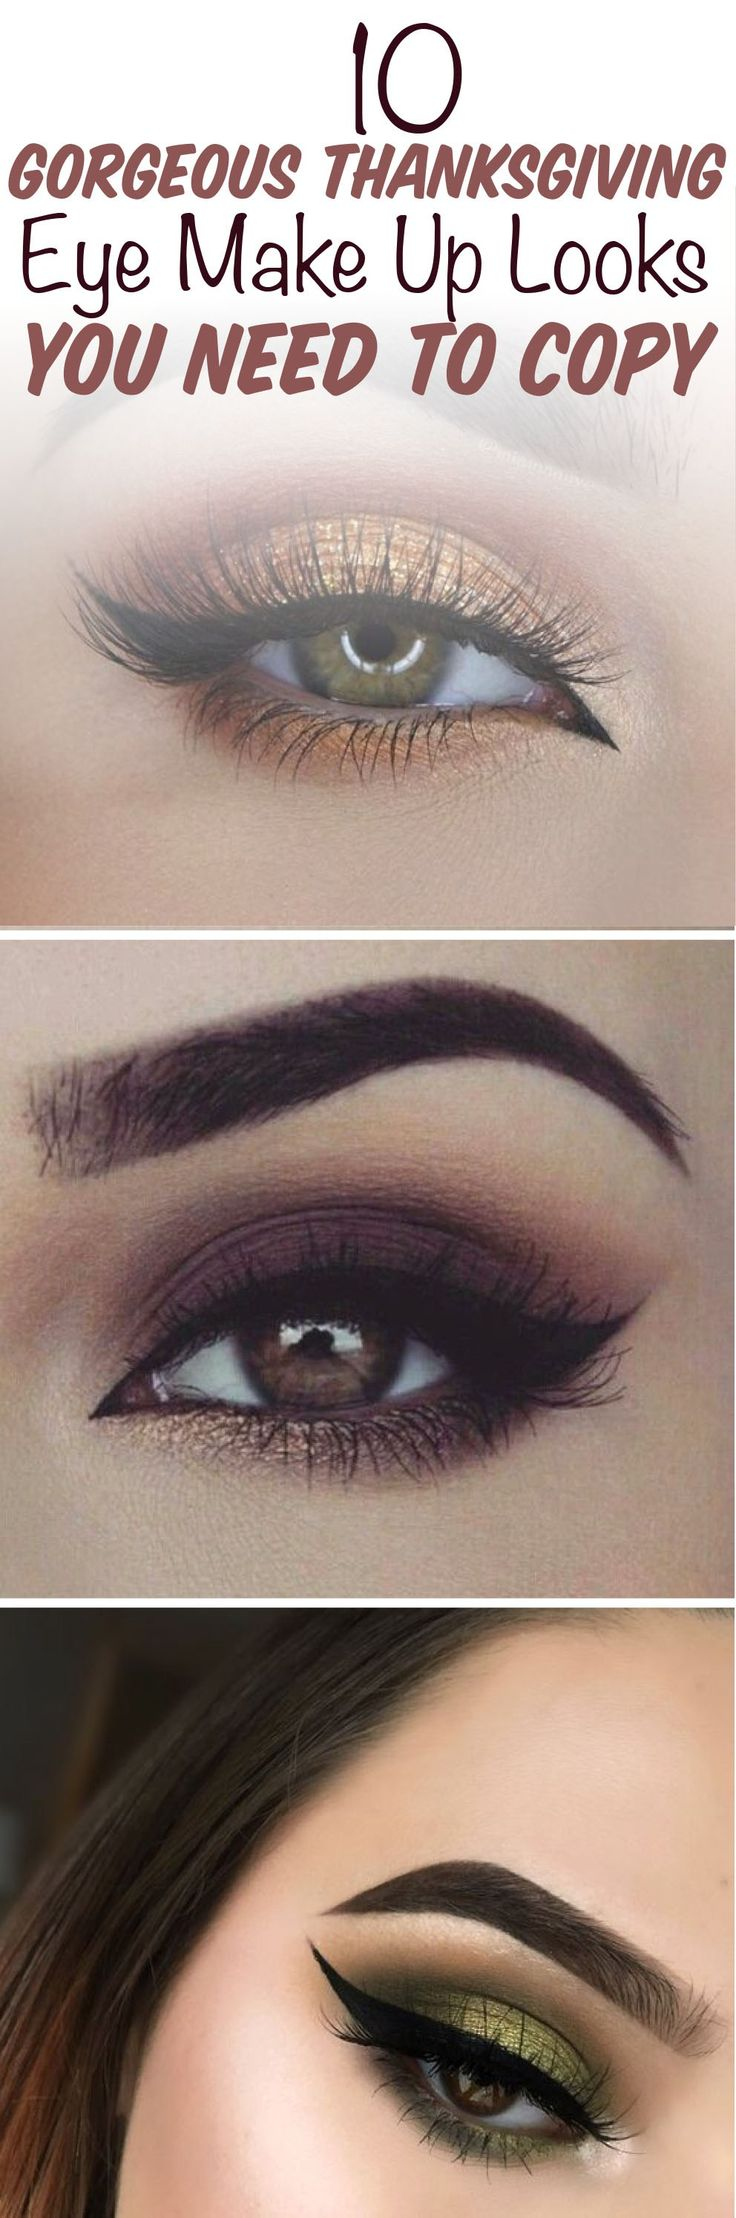 Thanksgiving is a great holiday to try out a new makeup look for because, let's face it, your face is the fanciest you'll get. (You have to make your stretchy pants and chunky sweater look put together somehow, right?) If you are looking for a little...